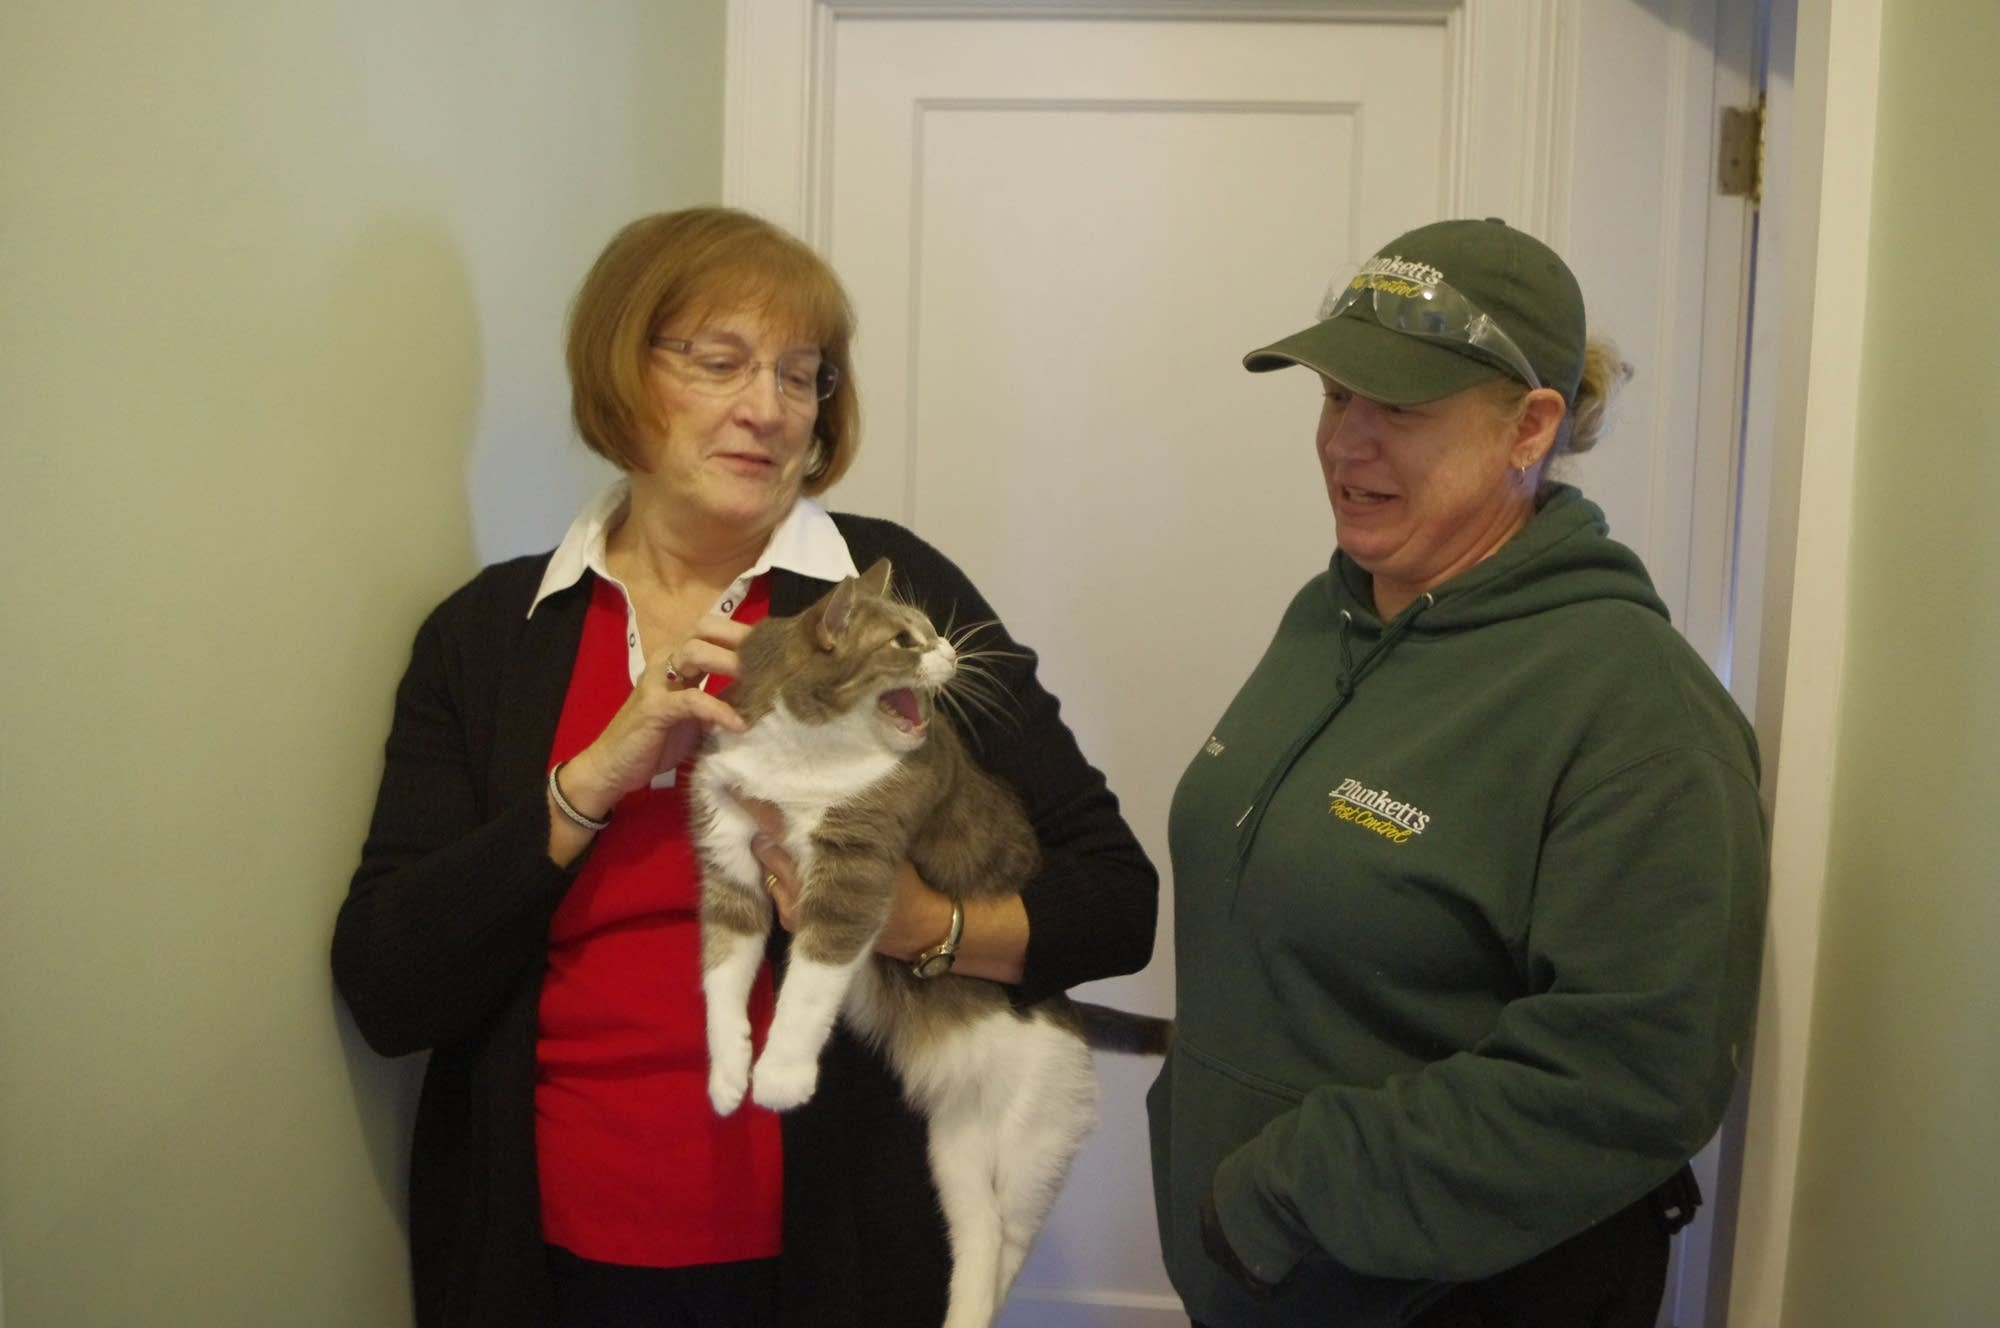 Homeowner Kathy Manderscheid and pest control technician Tedde Zumwalt